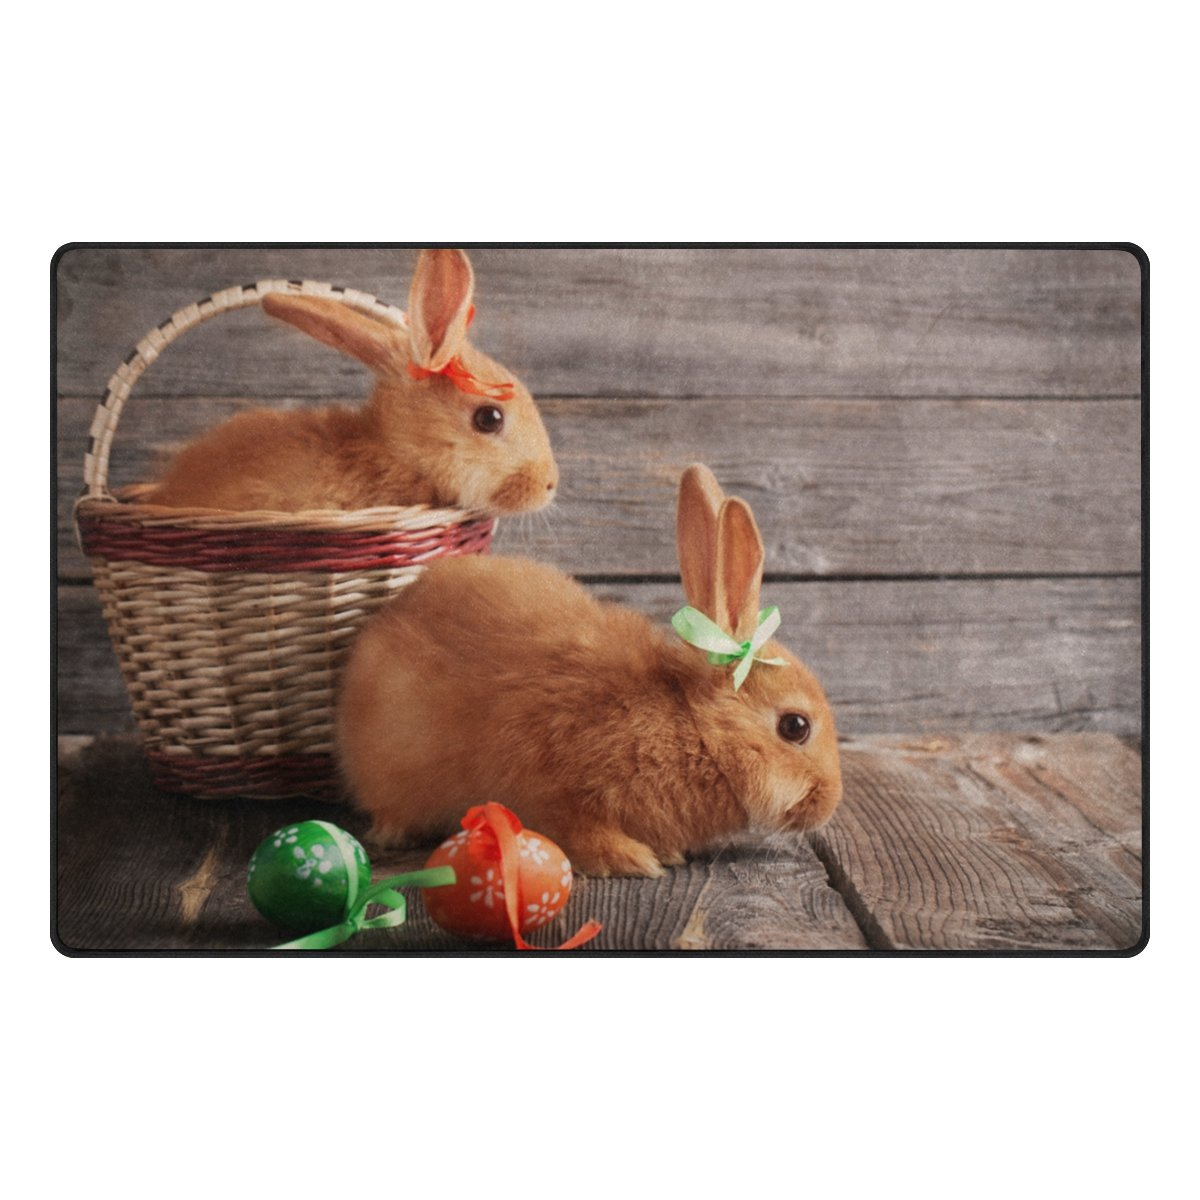 Vantaso Door Mats Non Slip Rugs Easter Egg And Bunny On Wood Board Play Mats Carpets for Kids Playing Room Living Room Soft Foam Kitchen Rugs 60x39 inch